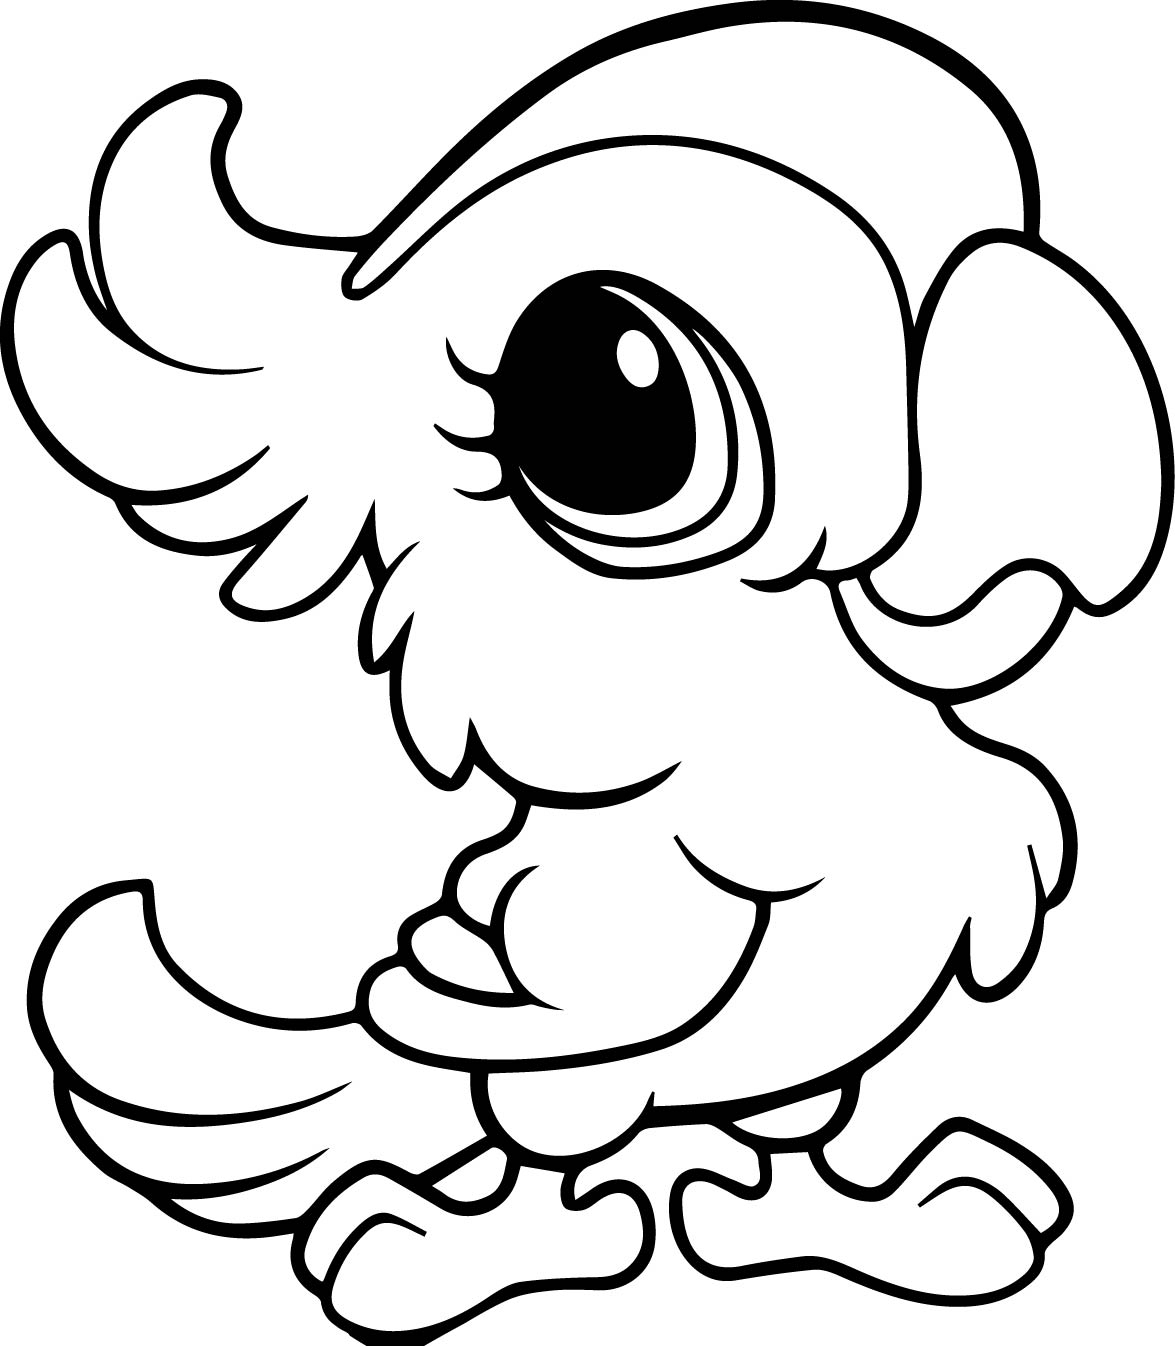 1175x1346 Awesome Cartoon Animals Coloring Pages Gallery Printable